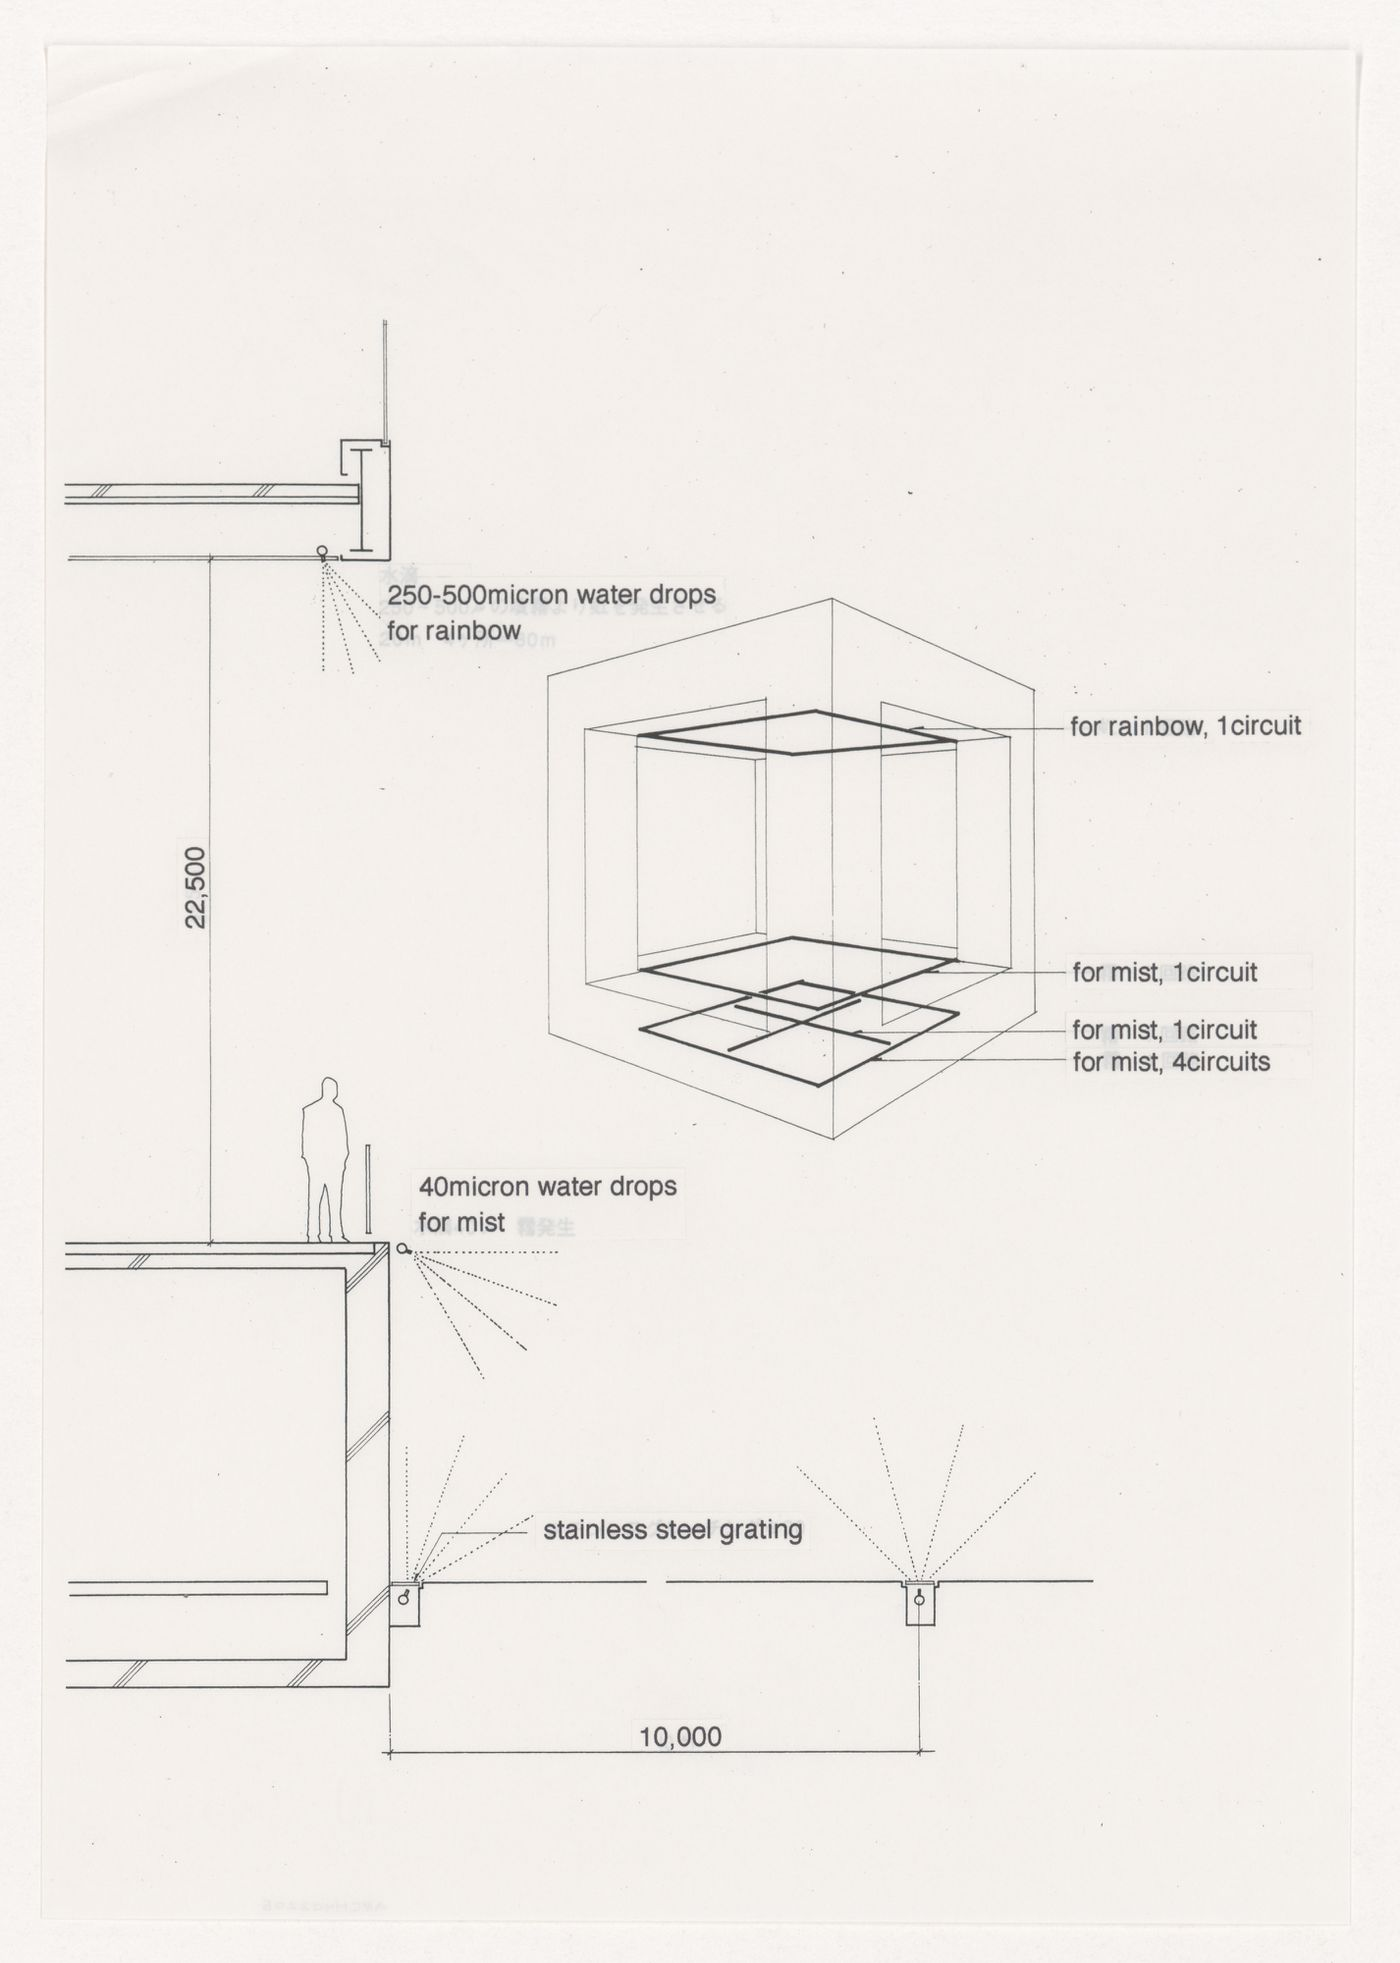 Diagrams related to mist and rainbow production for Prospecta Toyama '92 Observatory Tower, Imizu, Japan